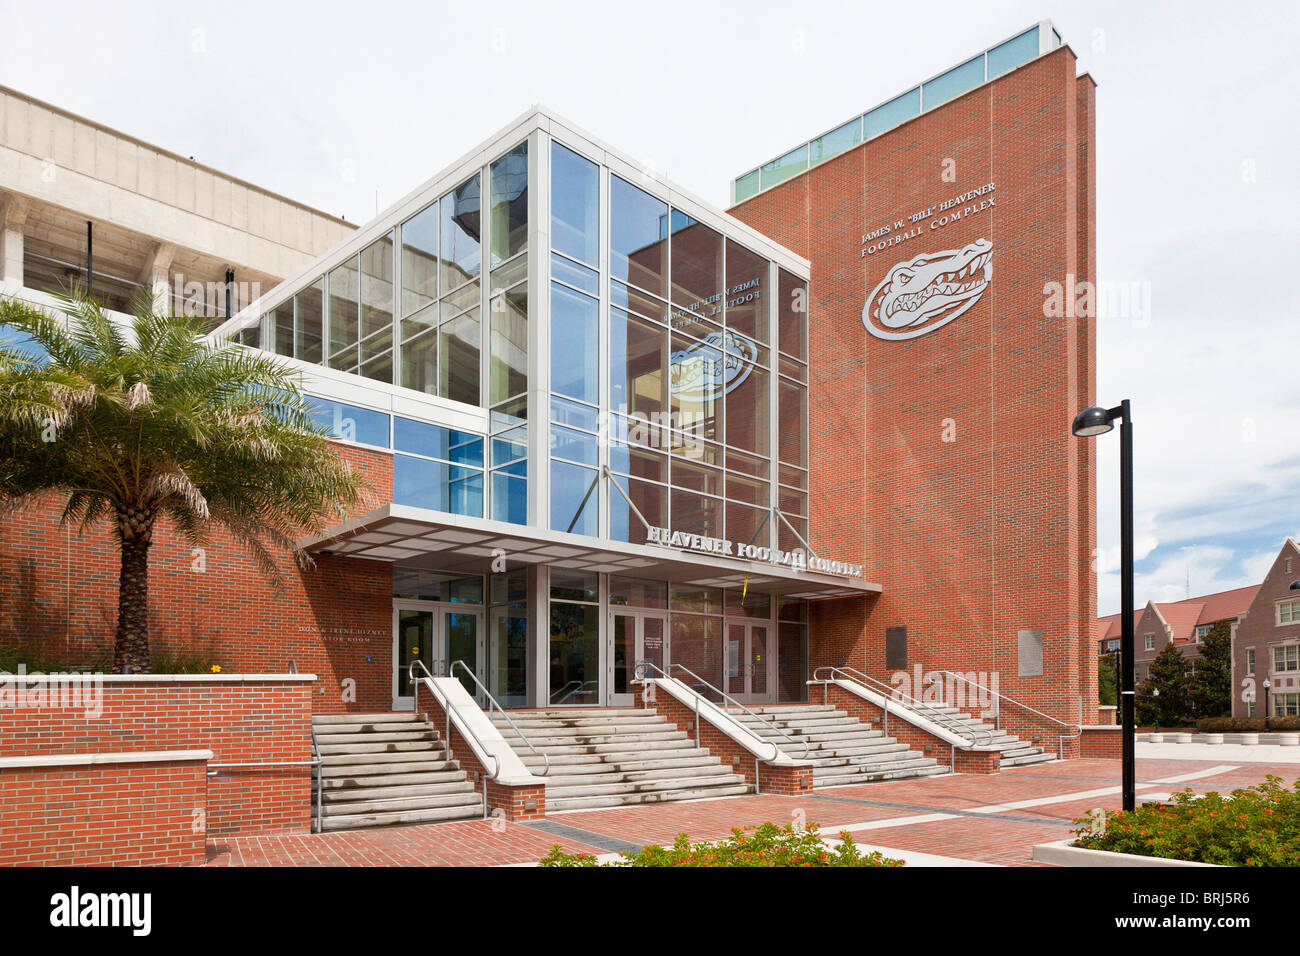 James W. 'Bill' Heavener Football Complex on the University of Florida campus which is the home of the Florida - Stock Image